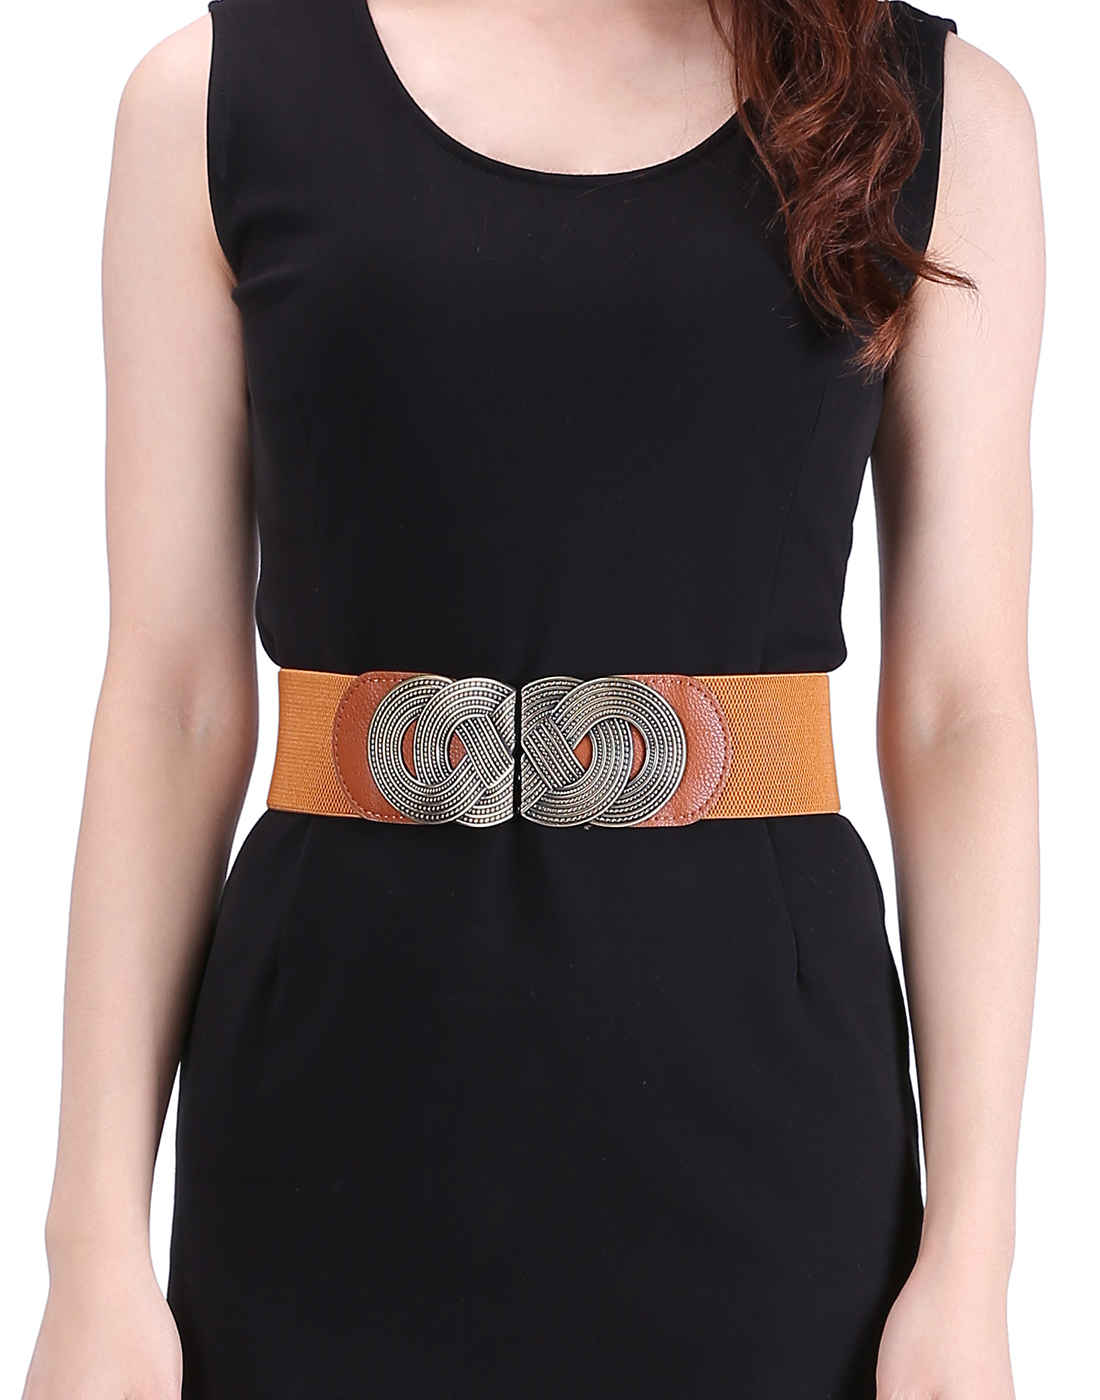 HDE Women's Elastic Cinch Belt with Infinity Style Buckle and Stretch Waist Band (Brown, XS-M)